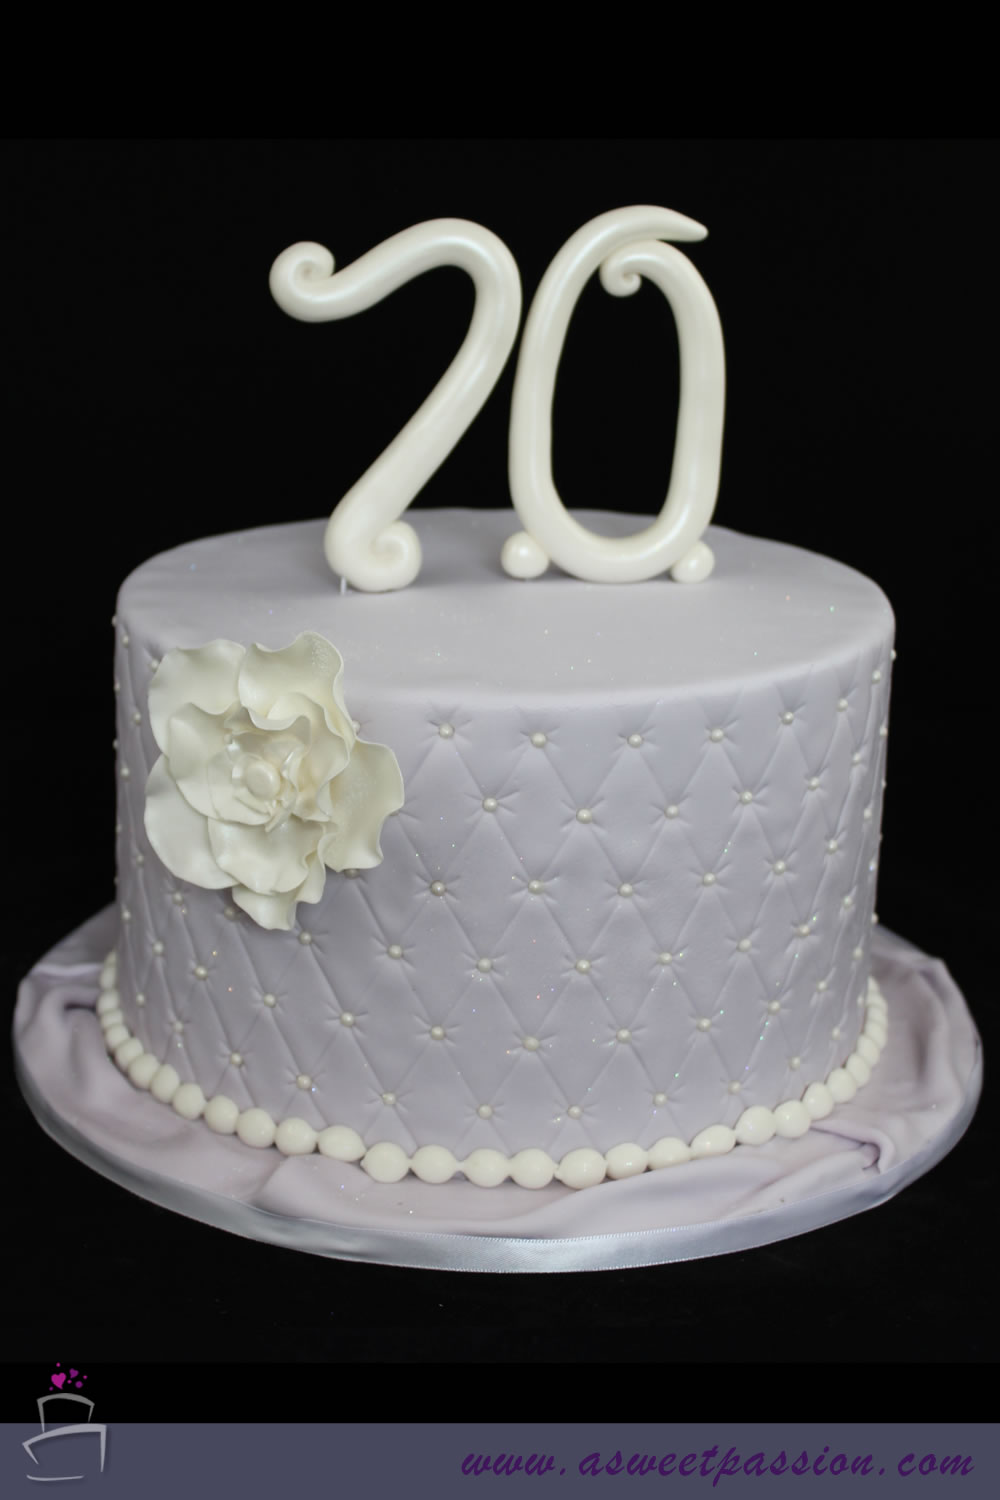 70th Lilac Birthday Cake Sweet Passion Cakery